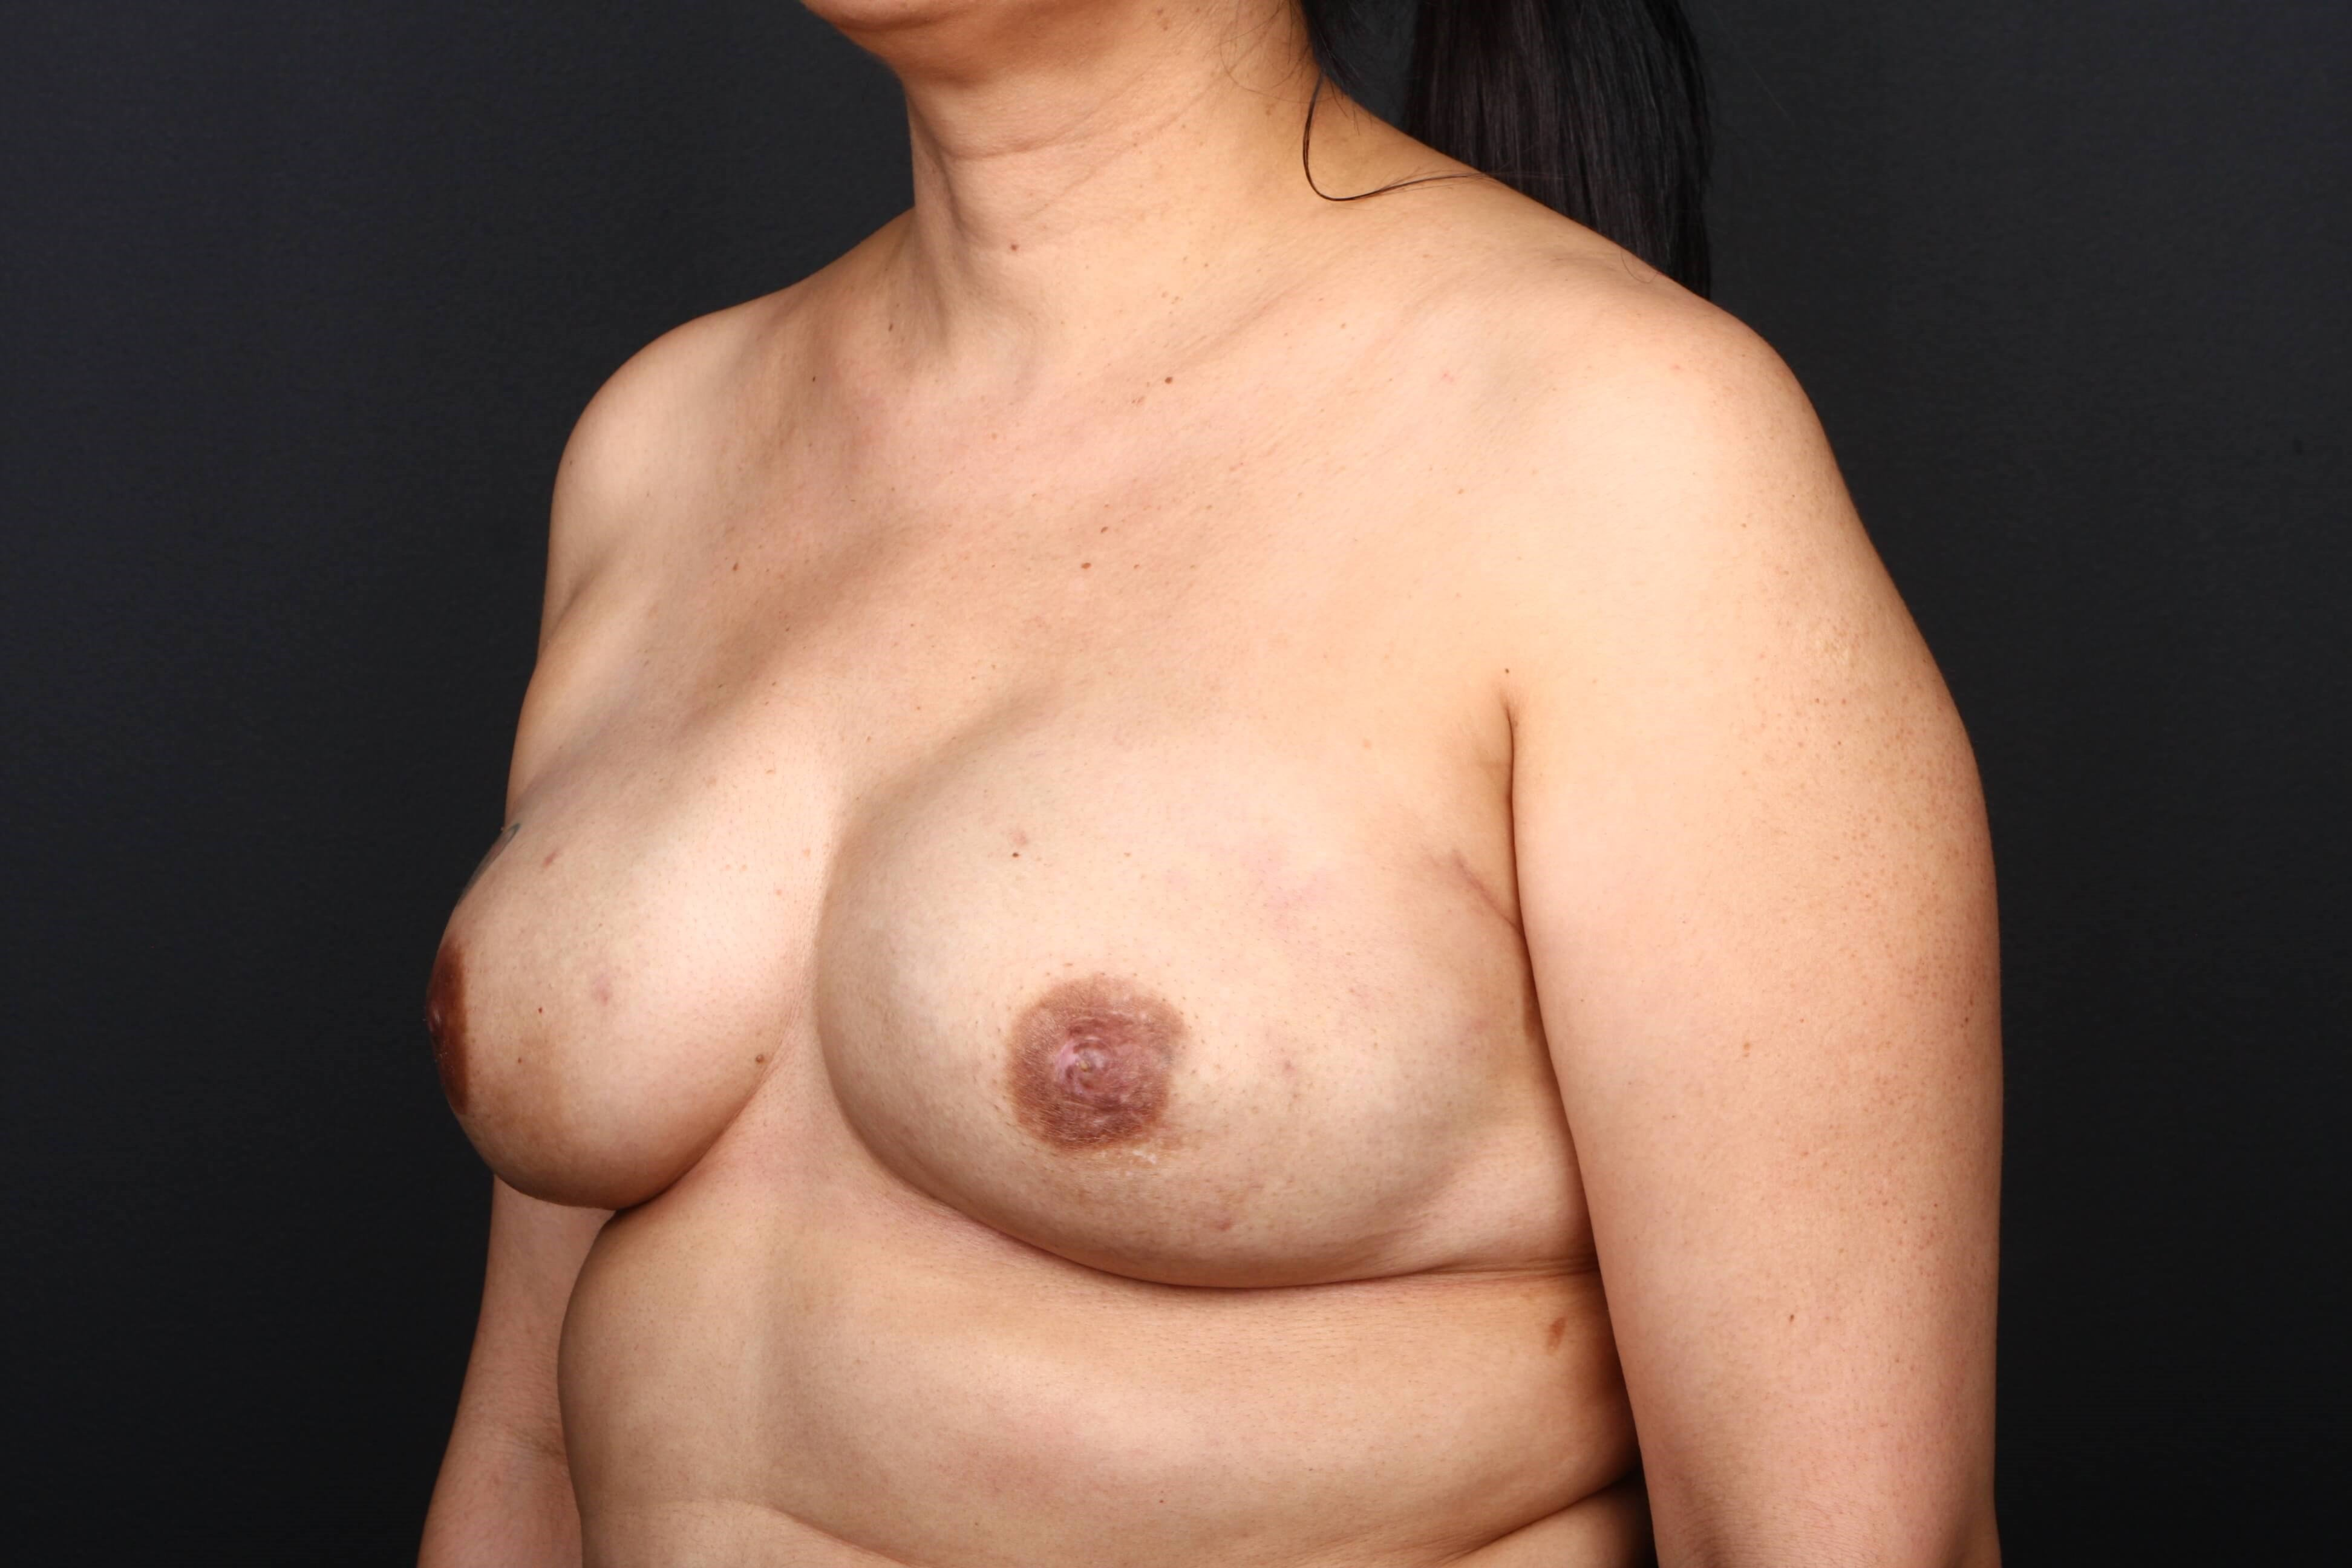 52 y/o breast reconstruction Side view implants